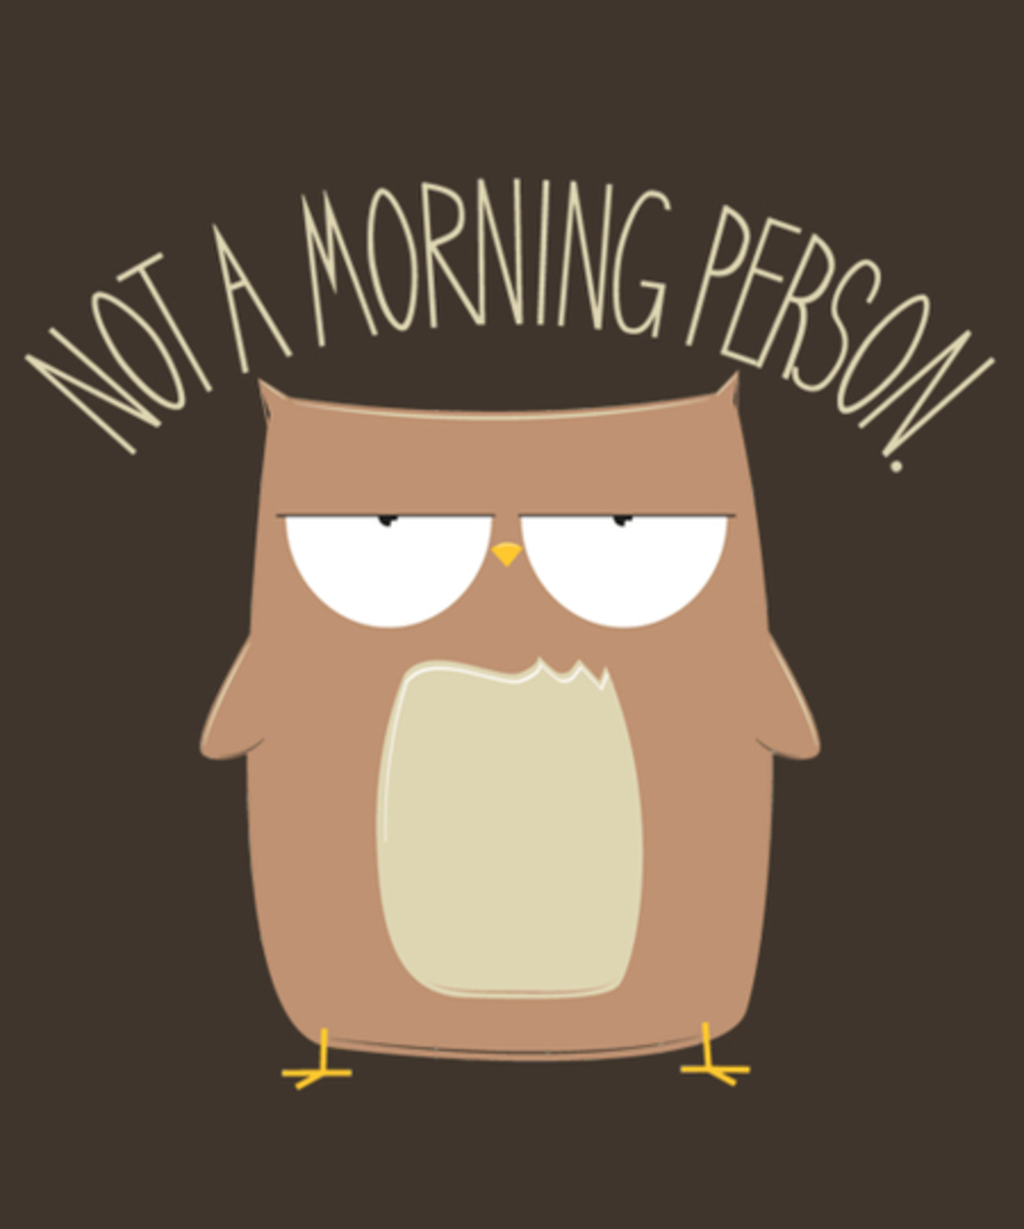 Qwertee: Not a Morning Person